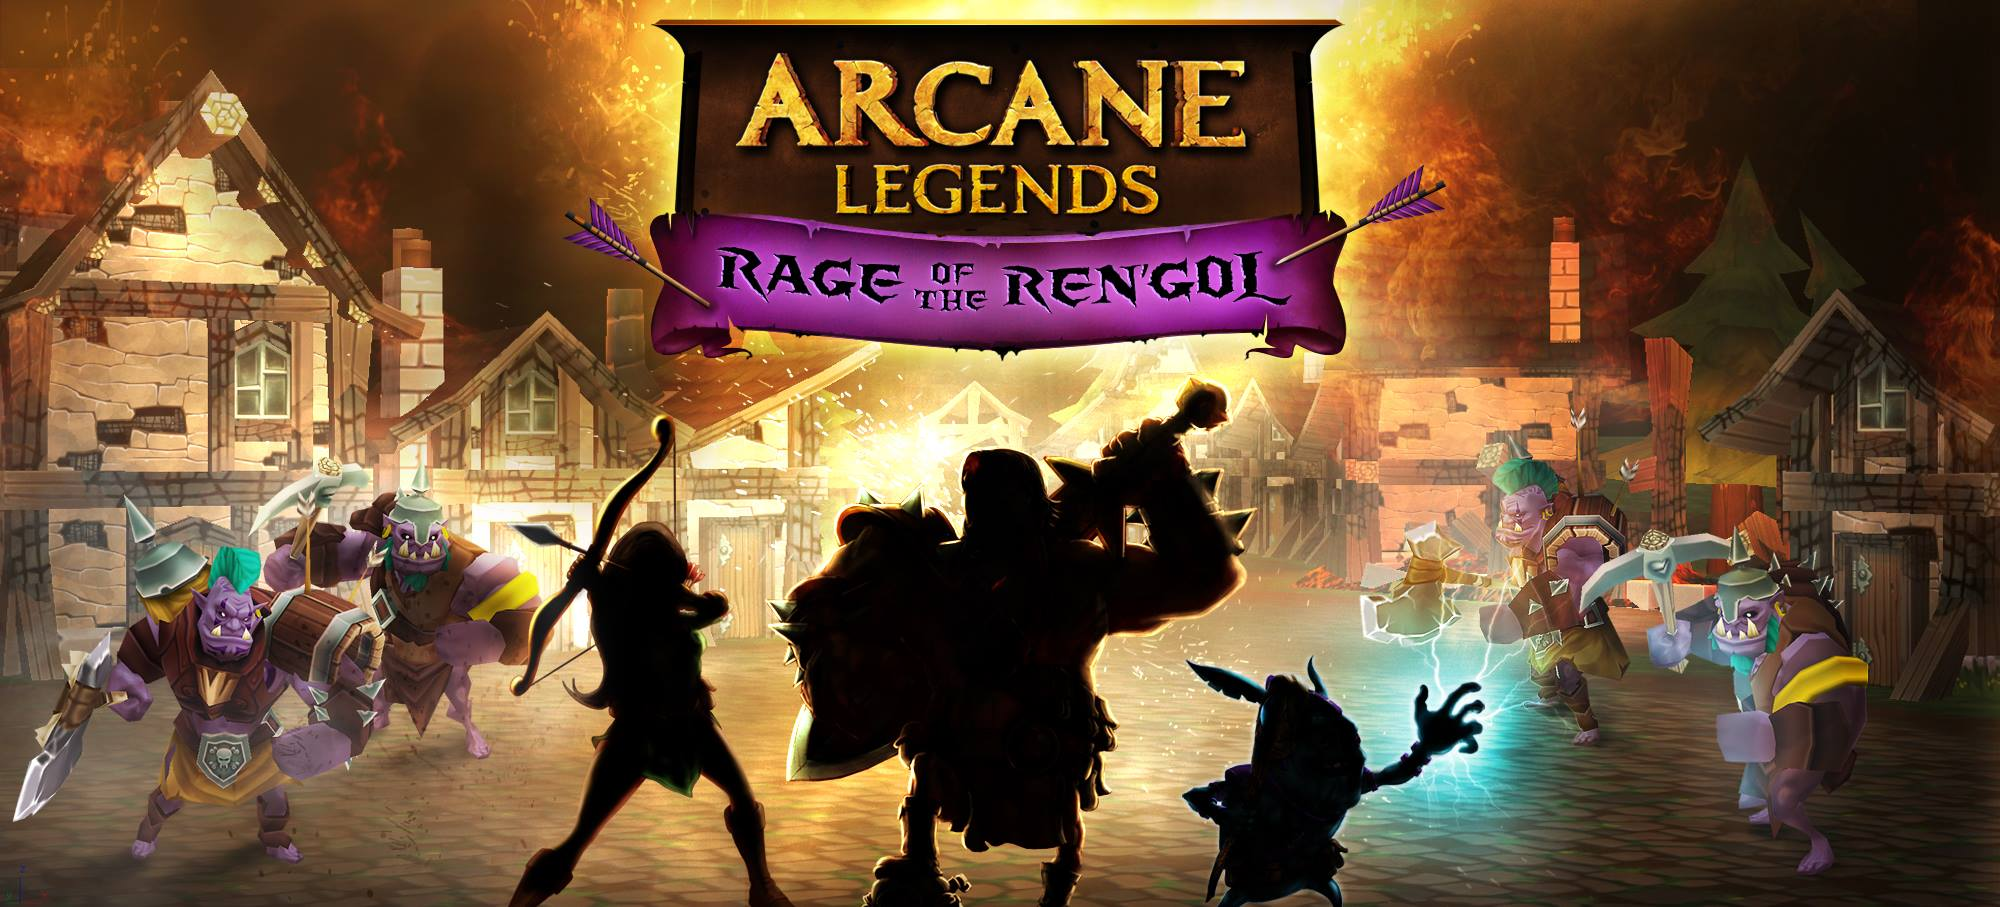 Arcane Legends new expansion Rage of the Ren'gol throws dynamic environments and dungeon crawling into the mix